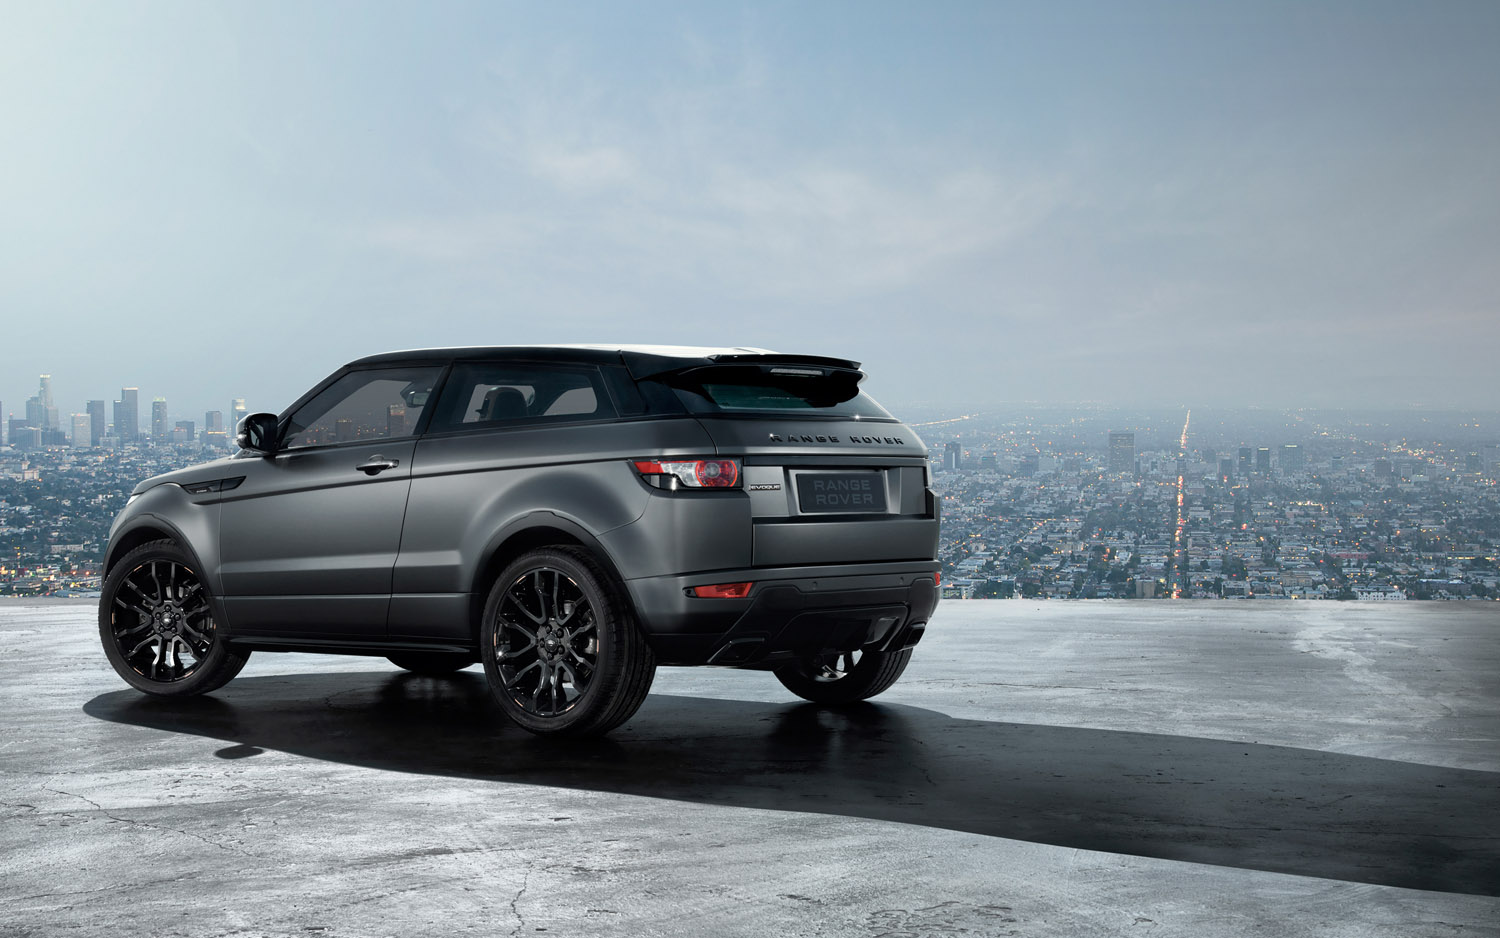 Feature flick range rover evoque gets posh 39 d up by for Baker motor company land rover